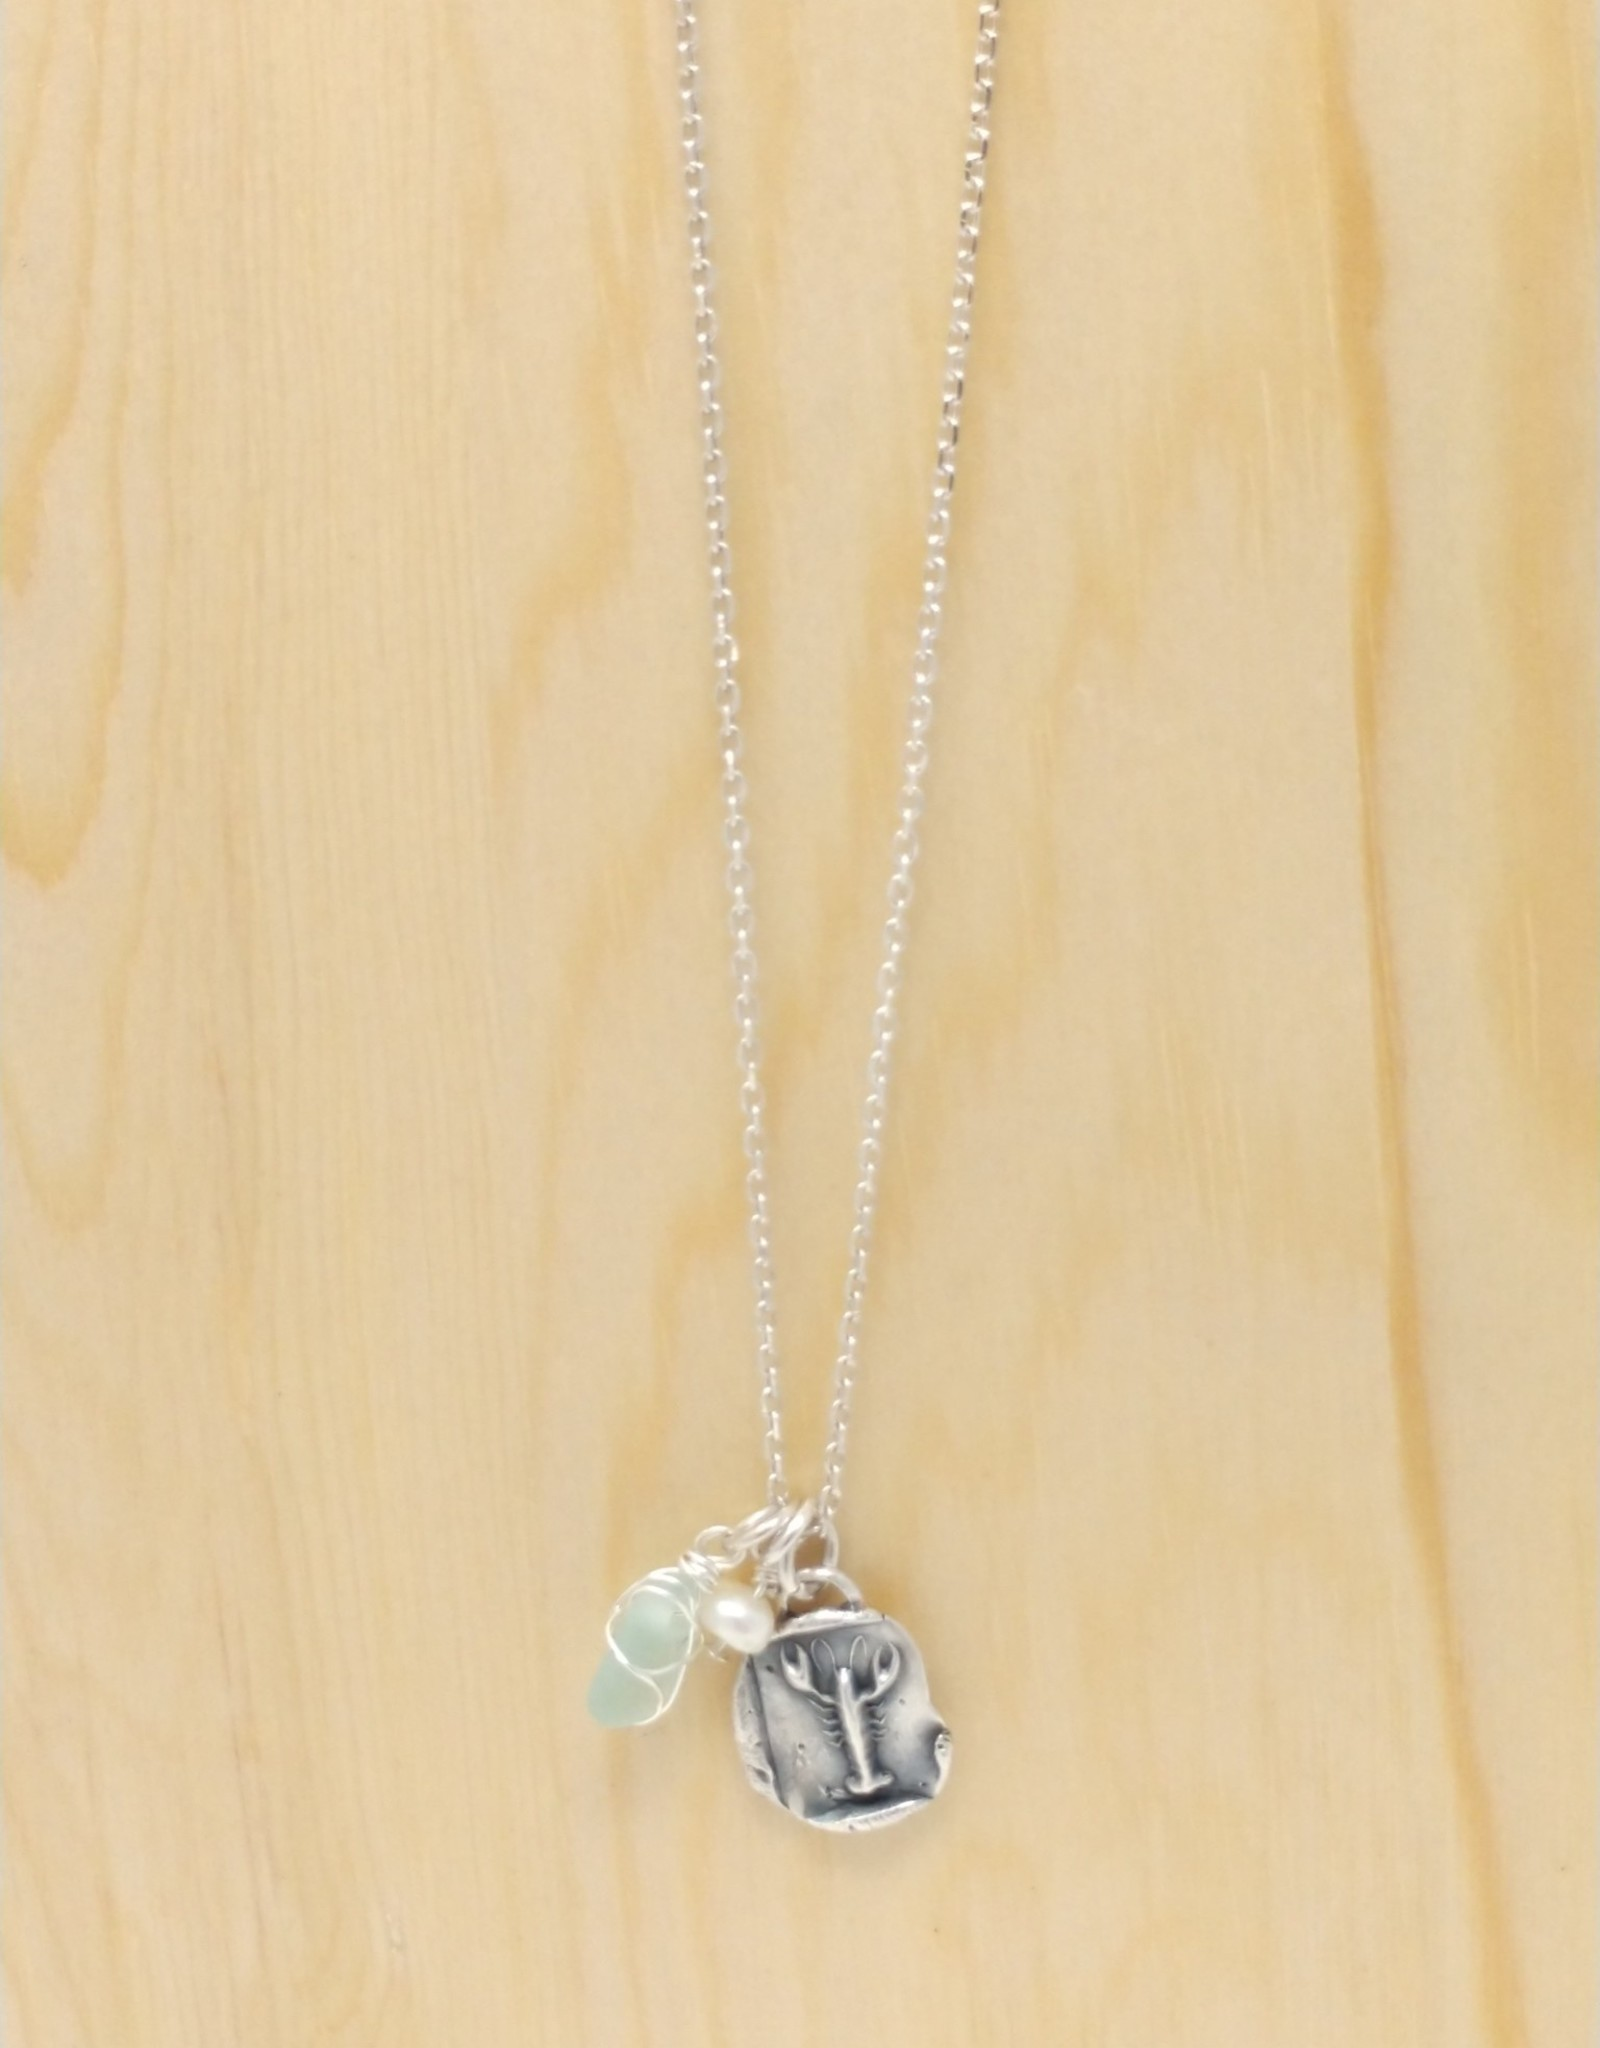 KLM Designs KLM Designs - Lobster Fine Silver Necklace w Sea Glass & Pearl